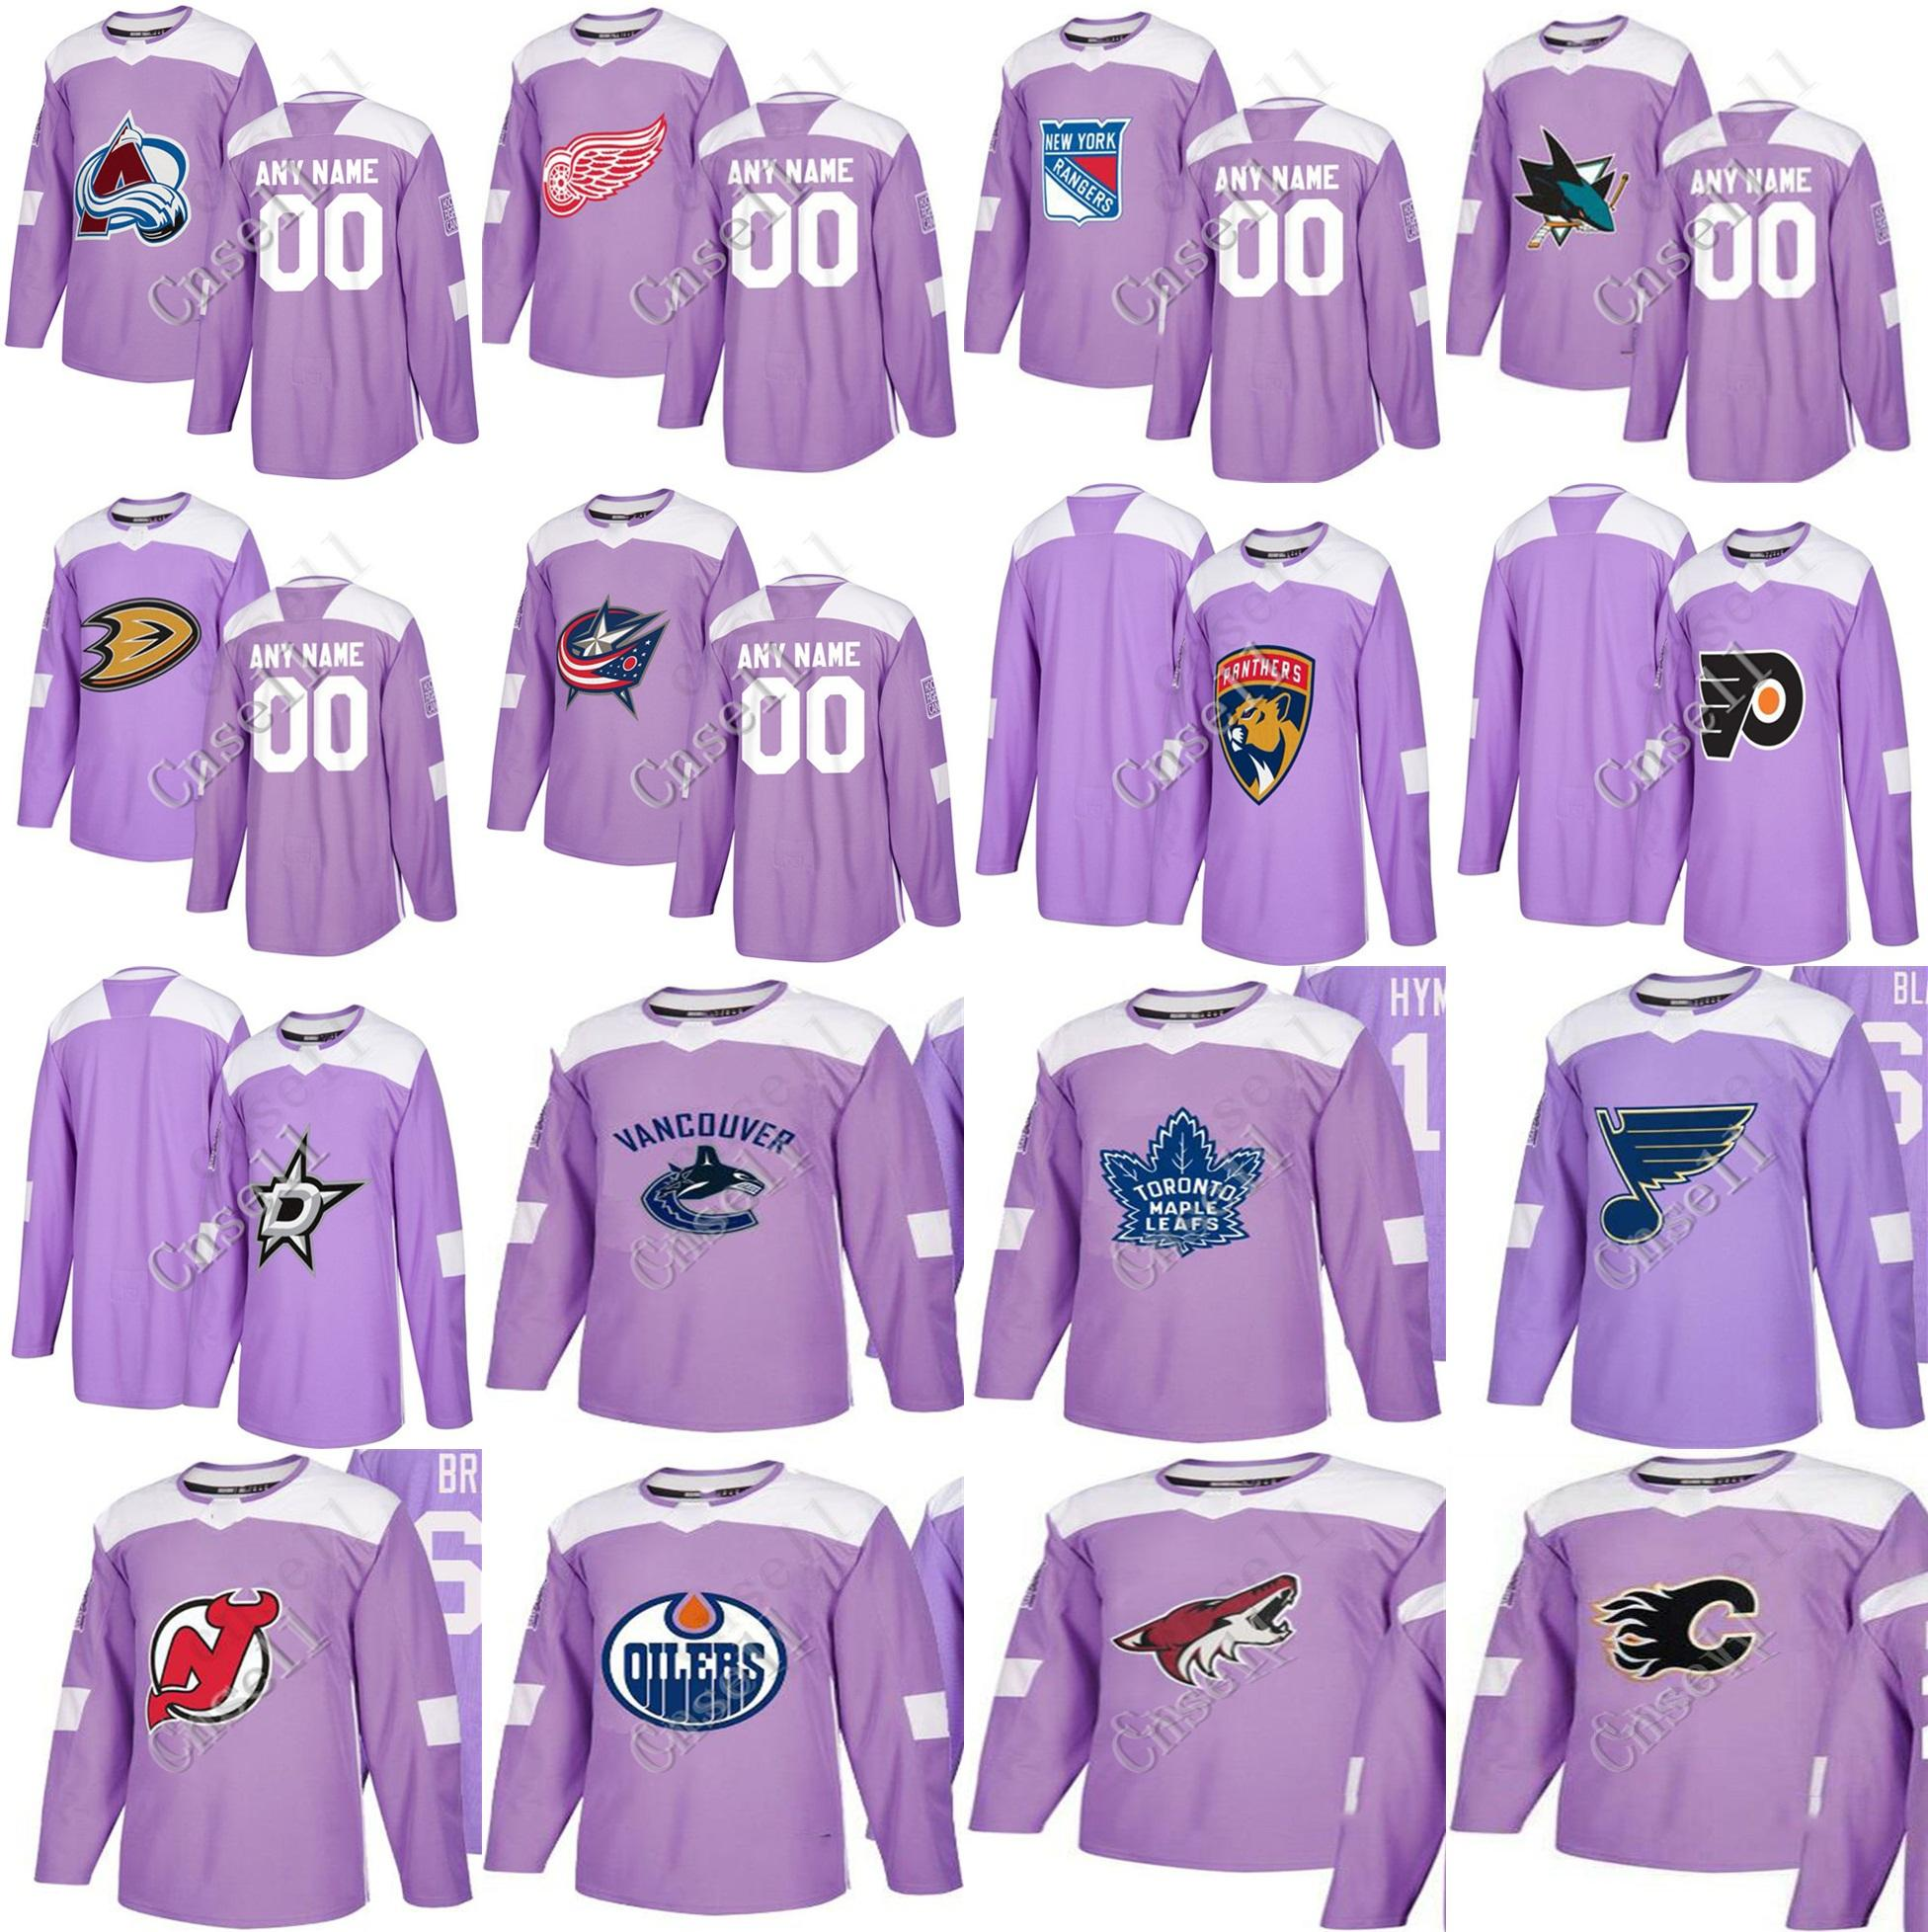 2020 2018 Purple Fights Cancer Practice Jersey Detroit Red Wings Colorado Avalanche Anaheim Ducks Oilers Sharks Philadelphia Flyers Hockey Jersey From Probowl 36 85 Dhgate Com